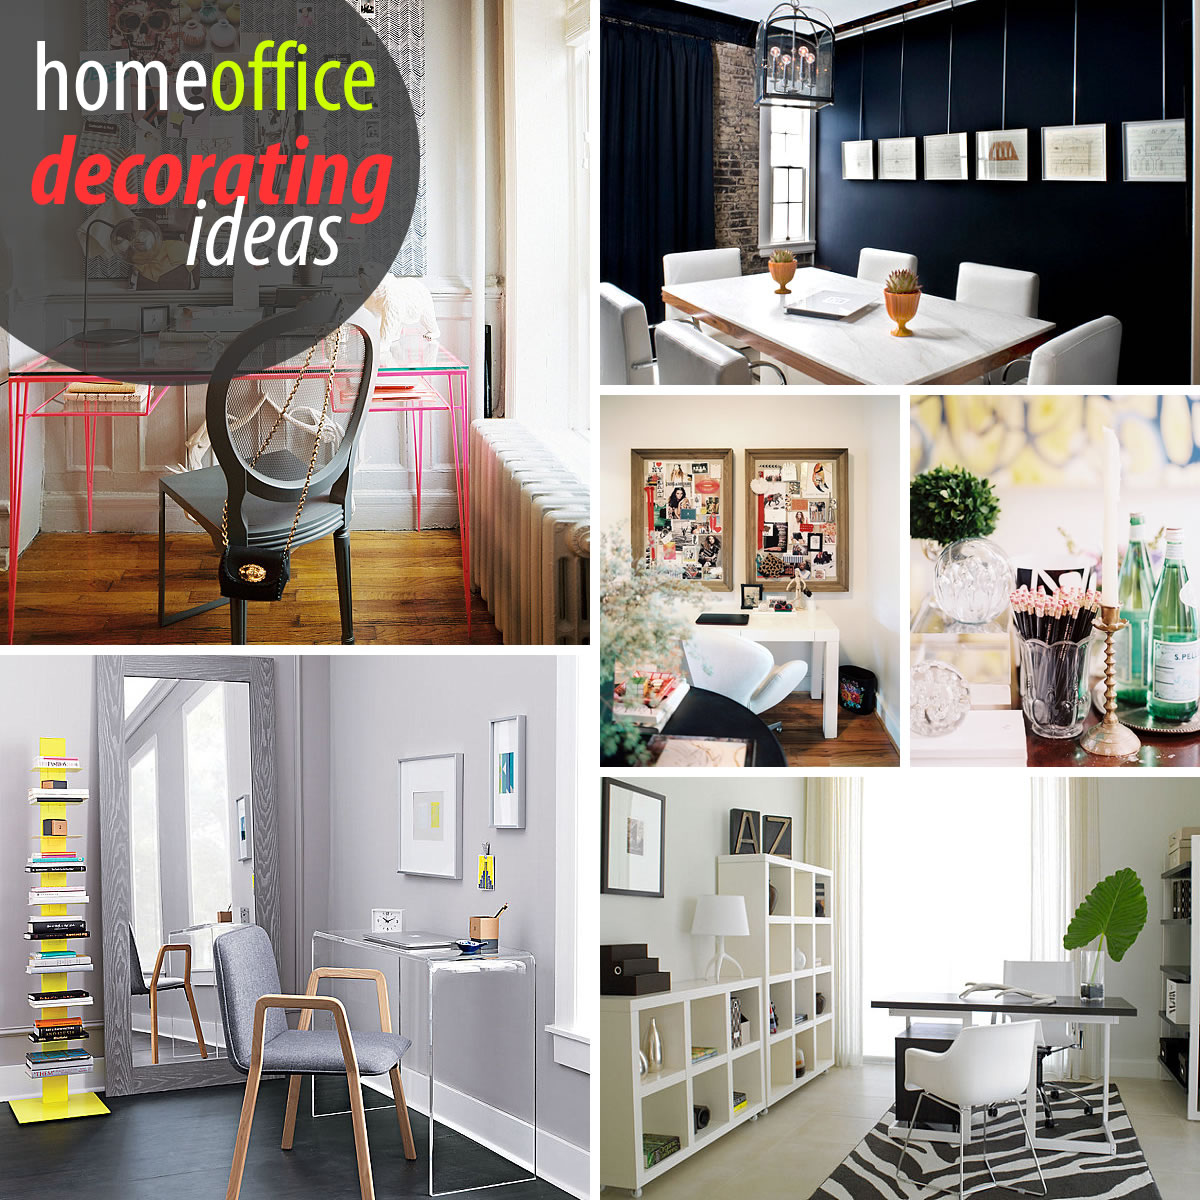 Creative home office decorating ideas for Home office decor ideas